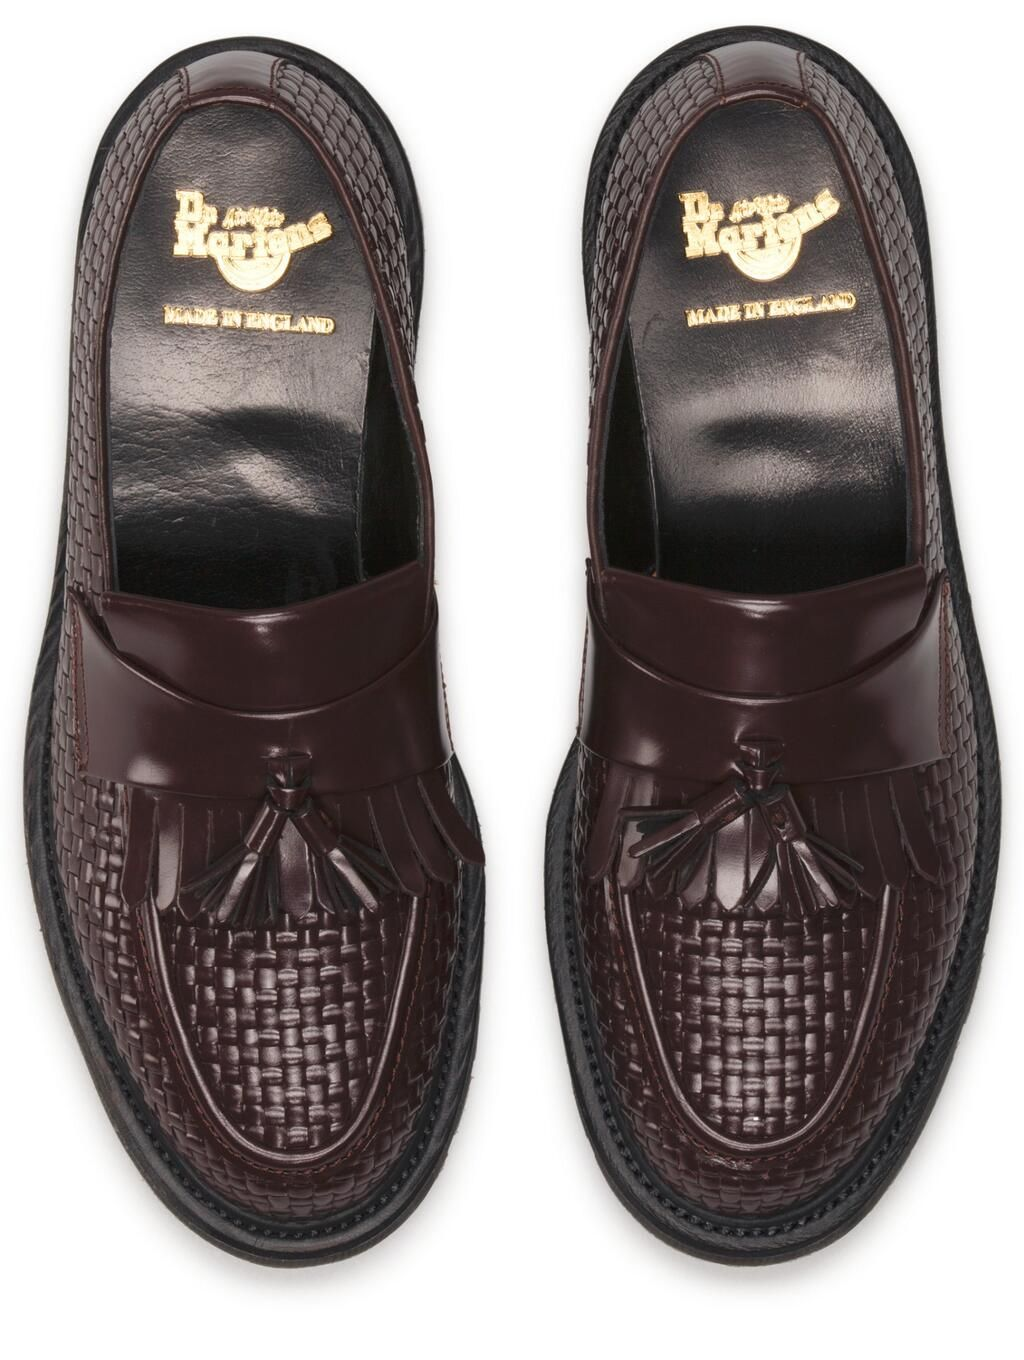 Dr. Martens Godfrey Shoe - Made in England